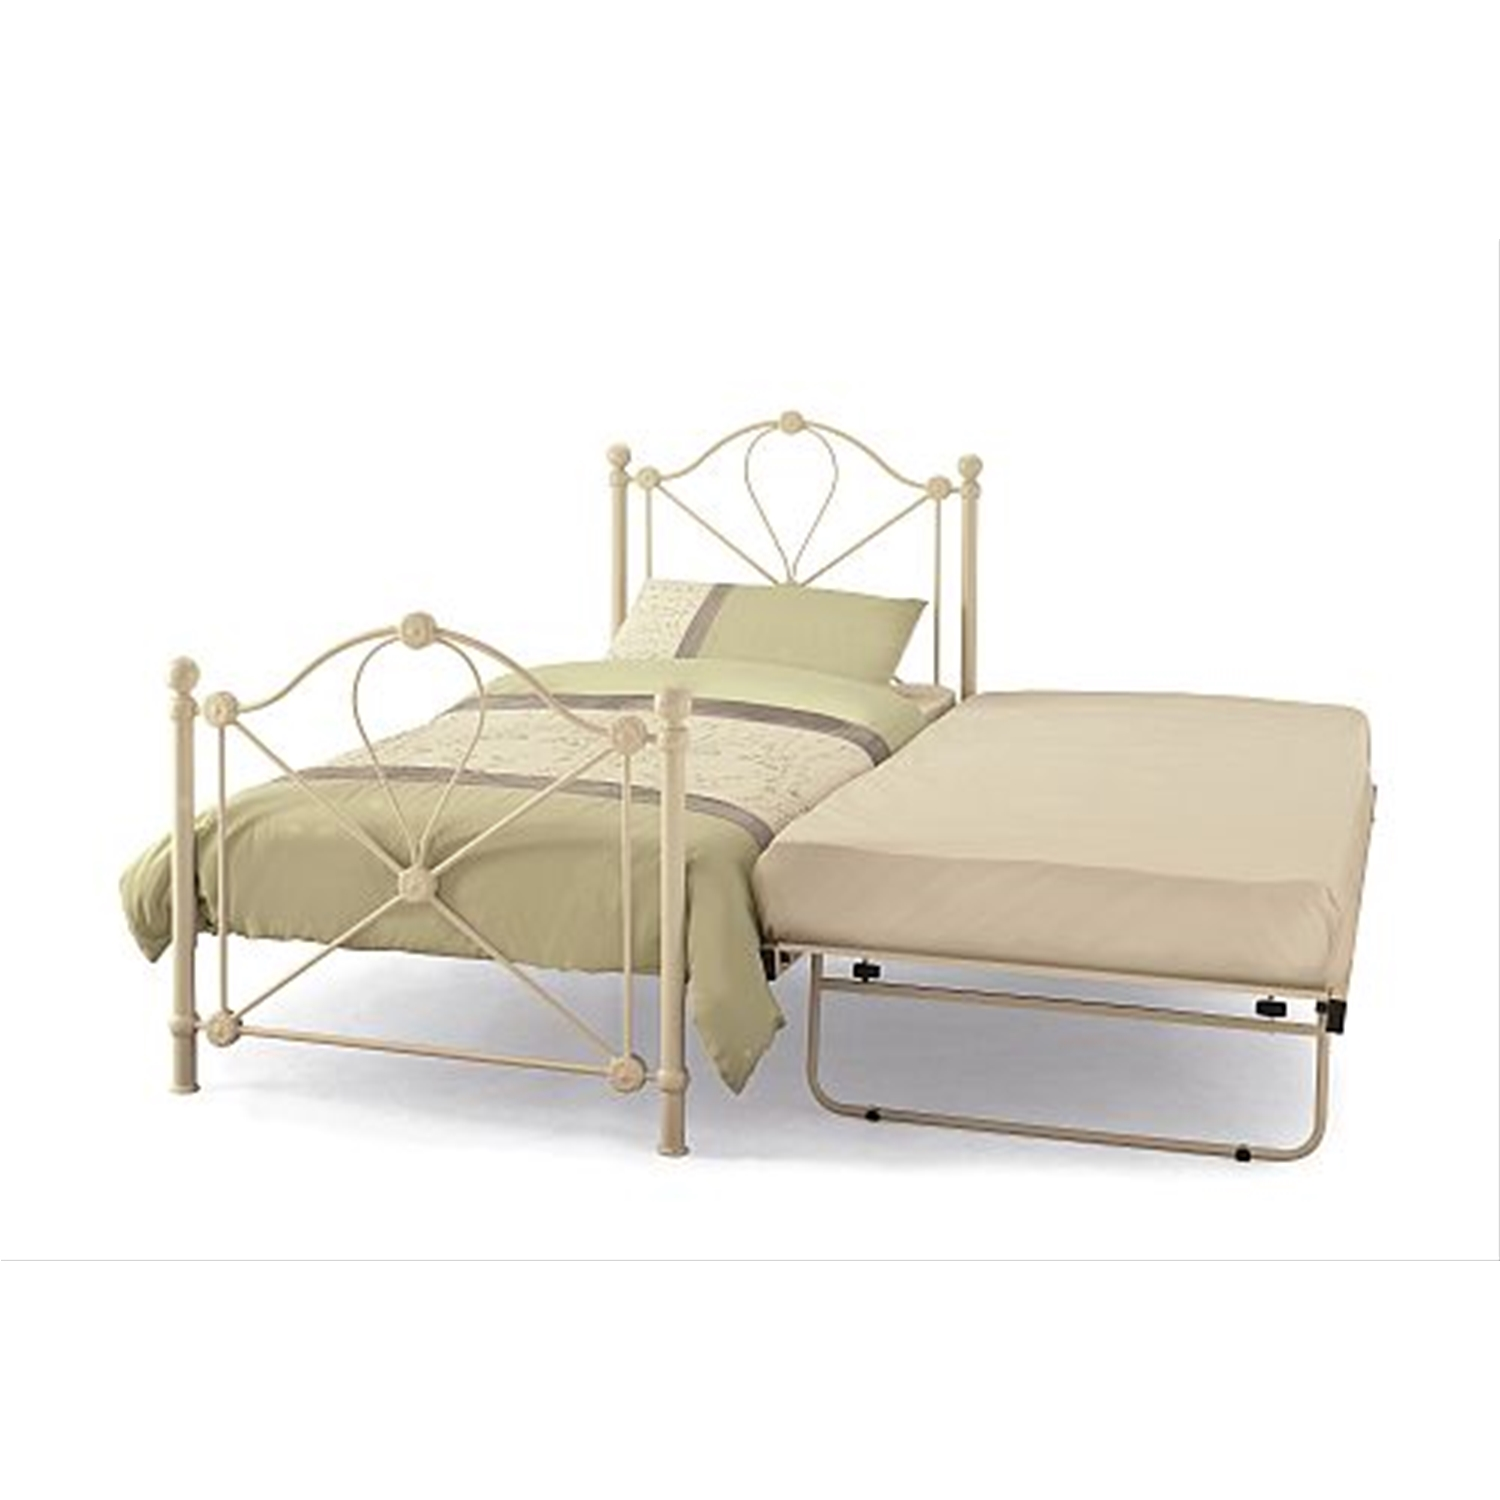 Image of Casa Lyon Single Guest Bed